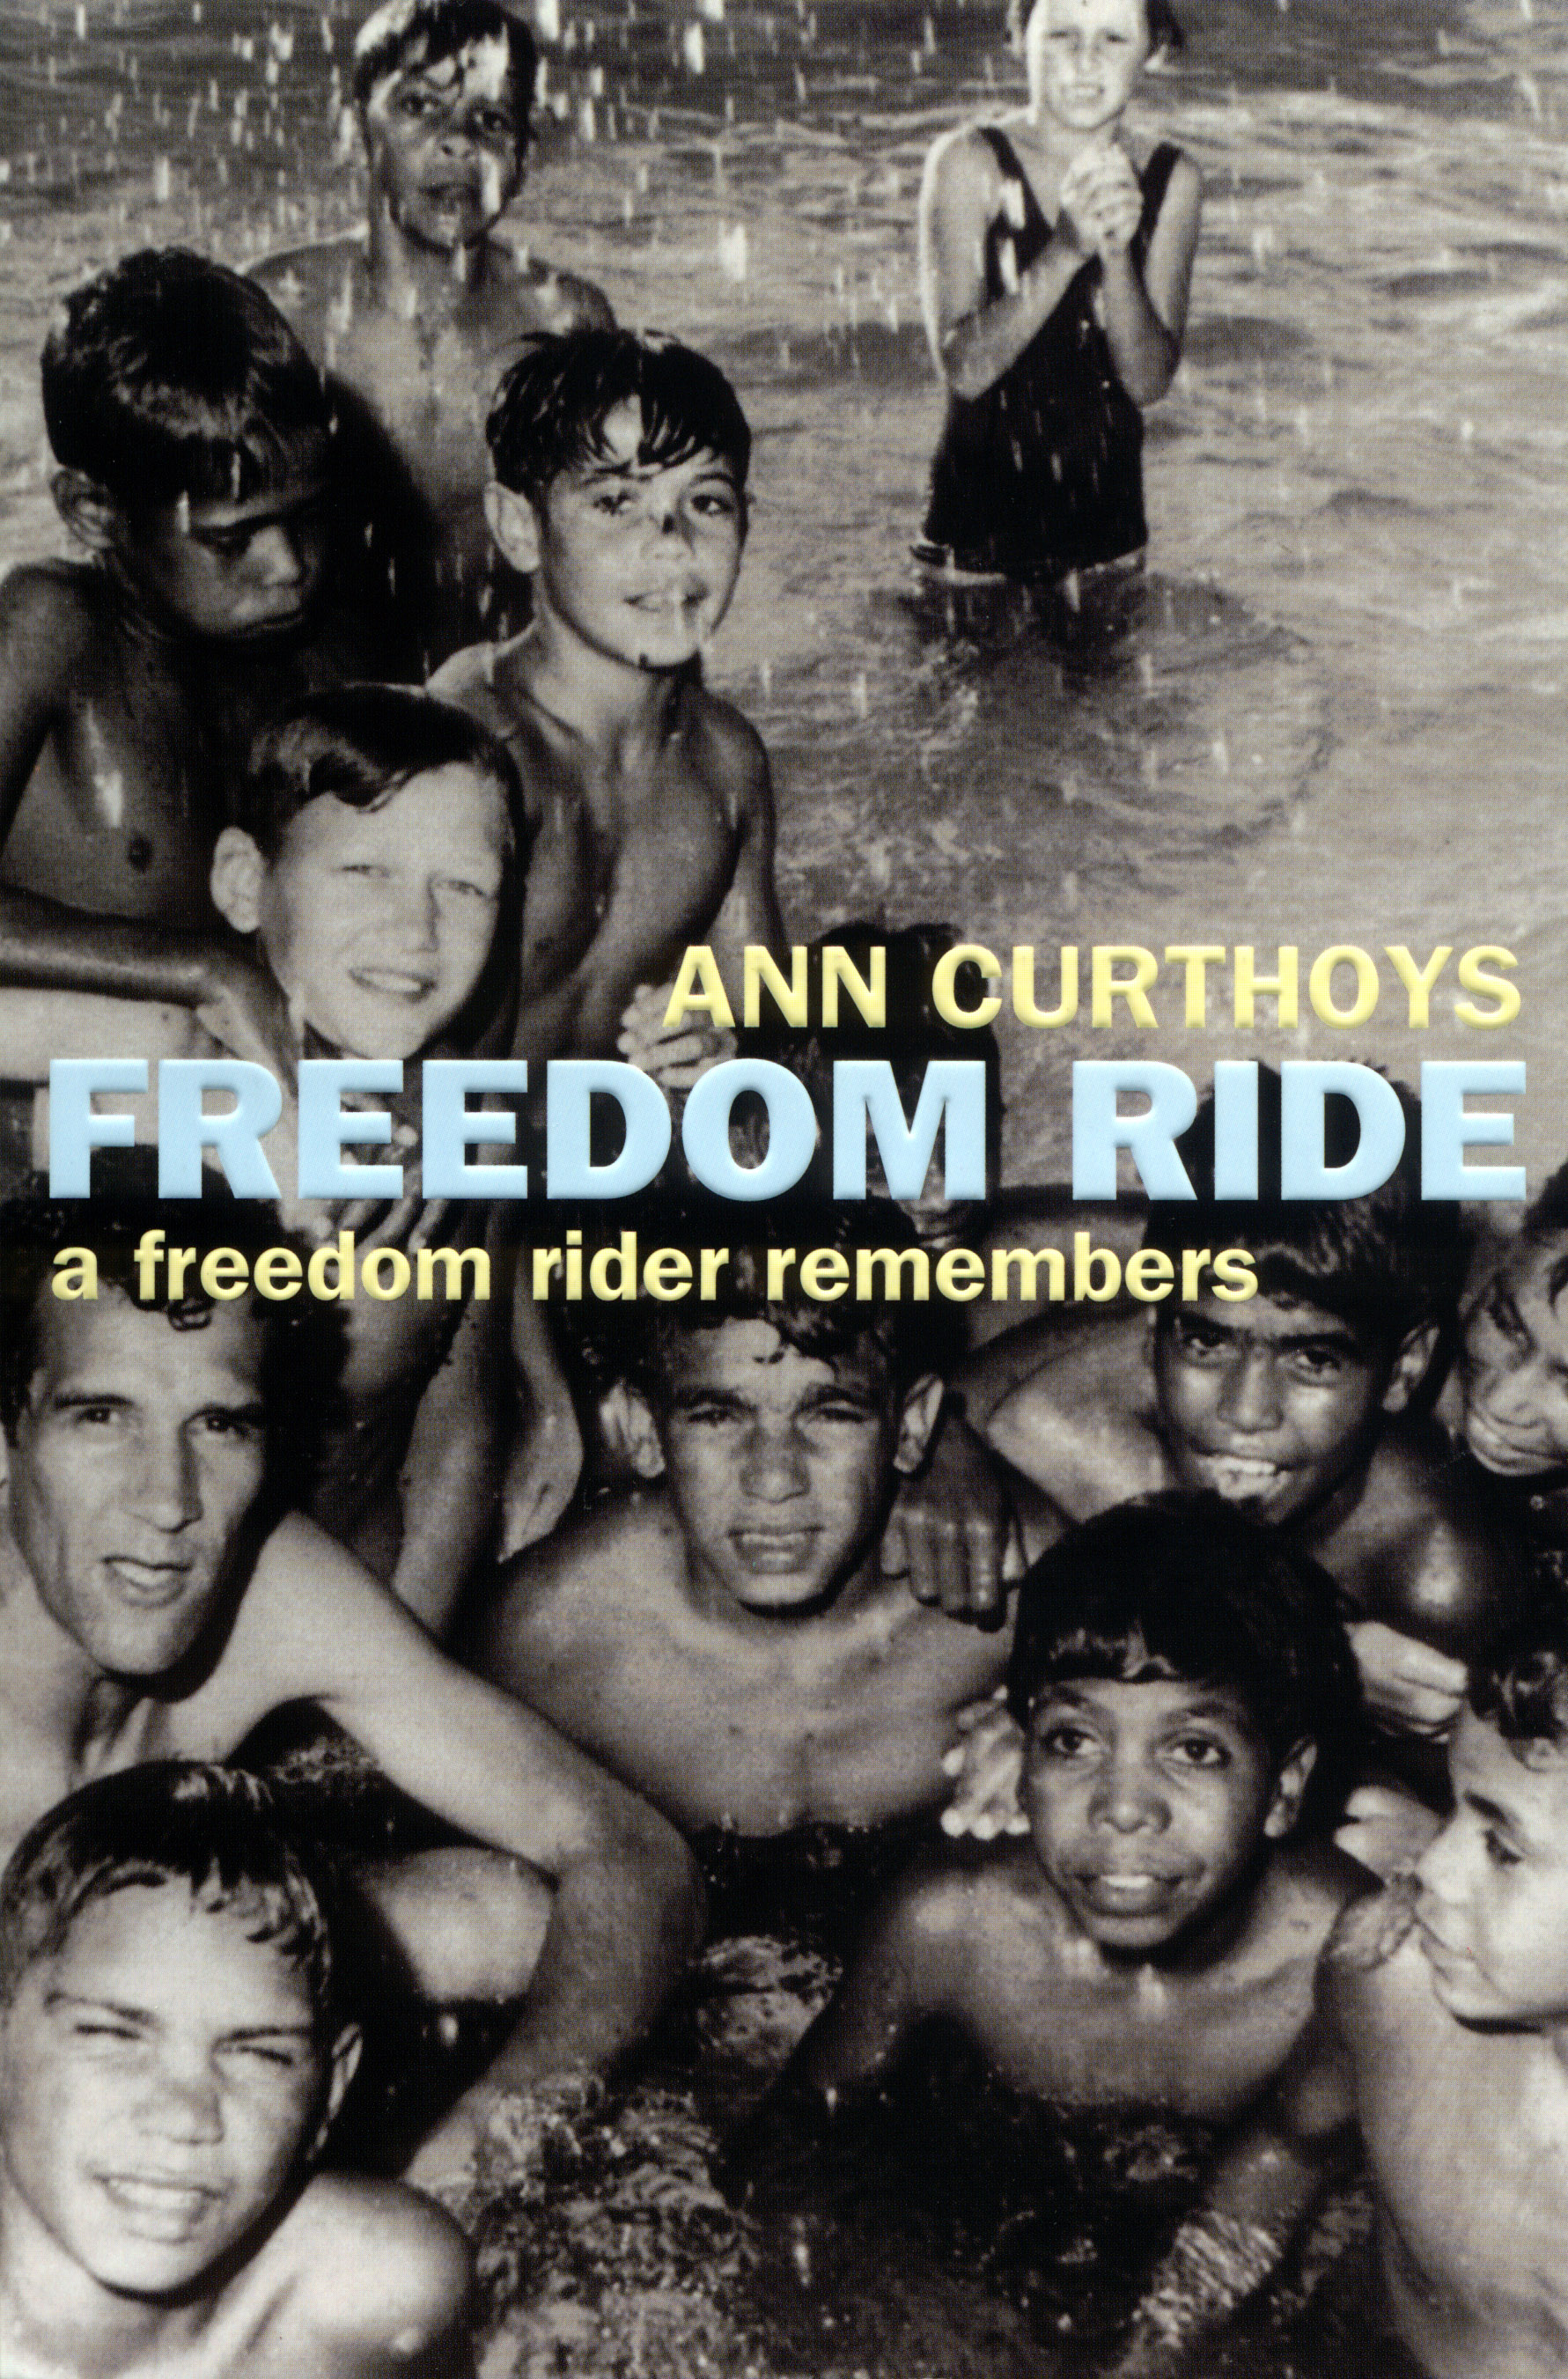 an essay on freedom riders Im writing an essay on the positive effect the freedom riders had on the civil rights movement i said 1) they displayed remarkable courage 2) they were able to.